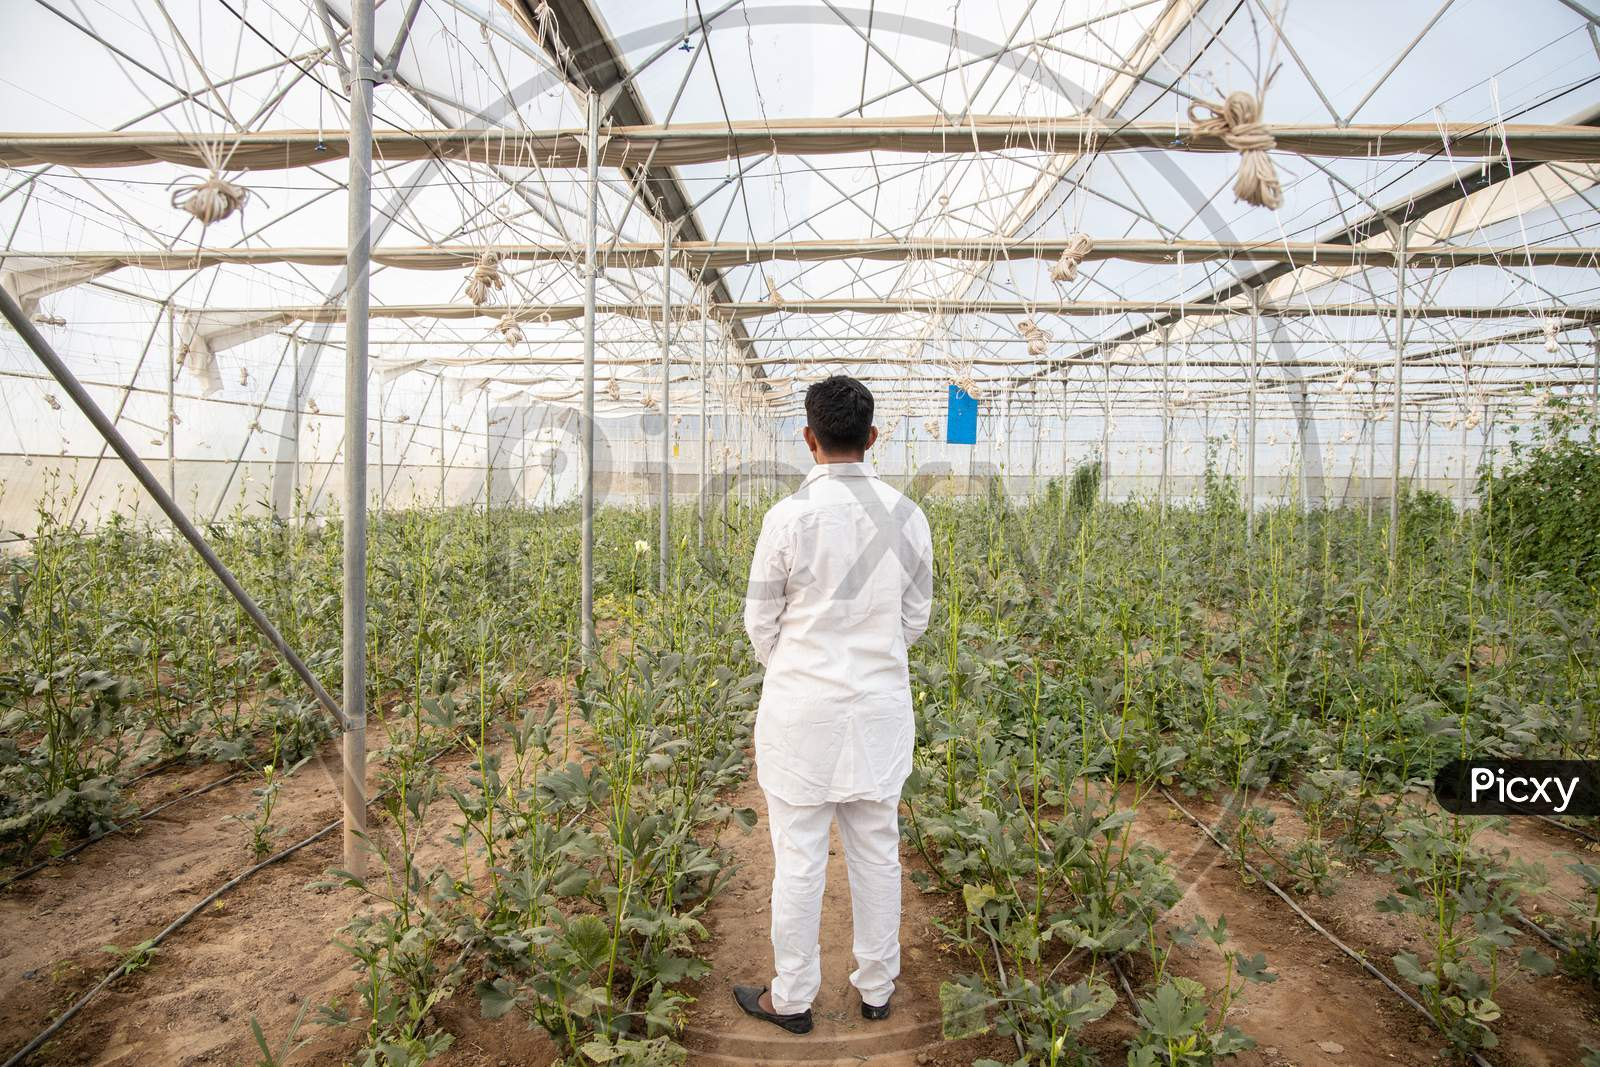 Back View Of Indian Farmer Standing At His Poly House Or Greenhouse, Agriculture Business And Rural Prosperity Concept. Man Wearing White Cloths, Copy Space